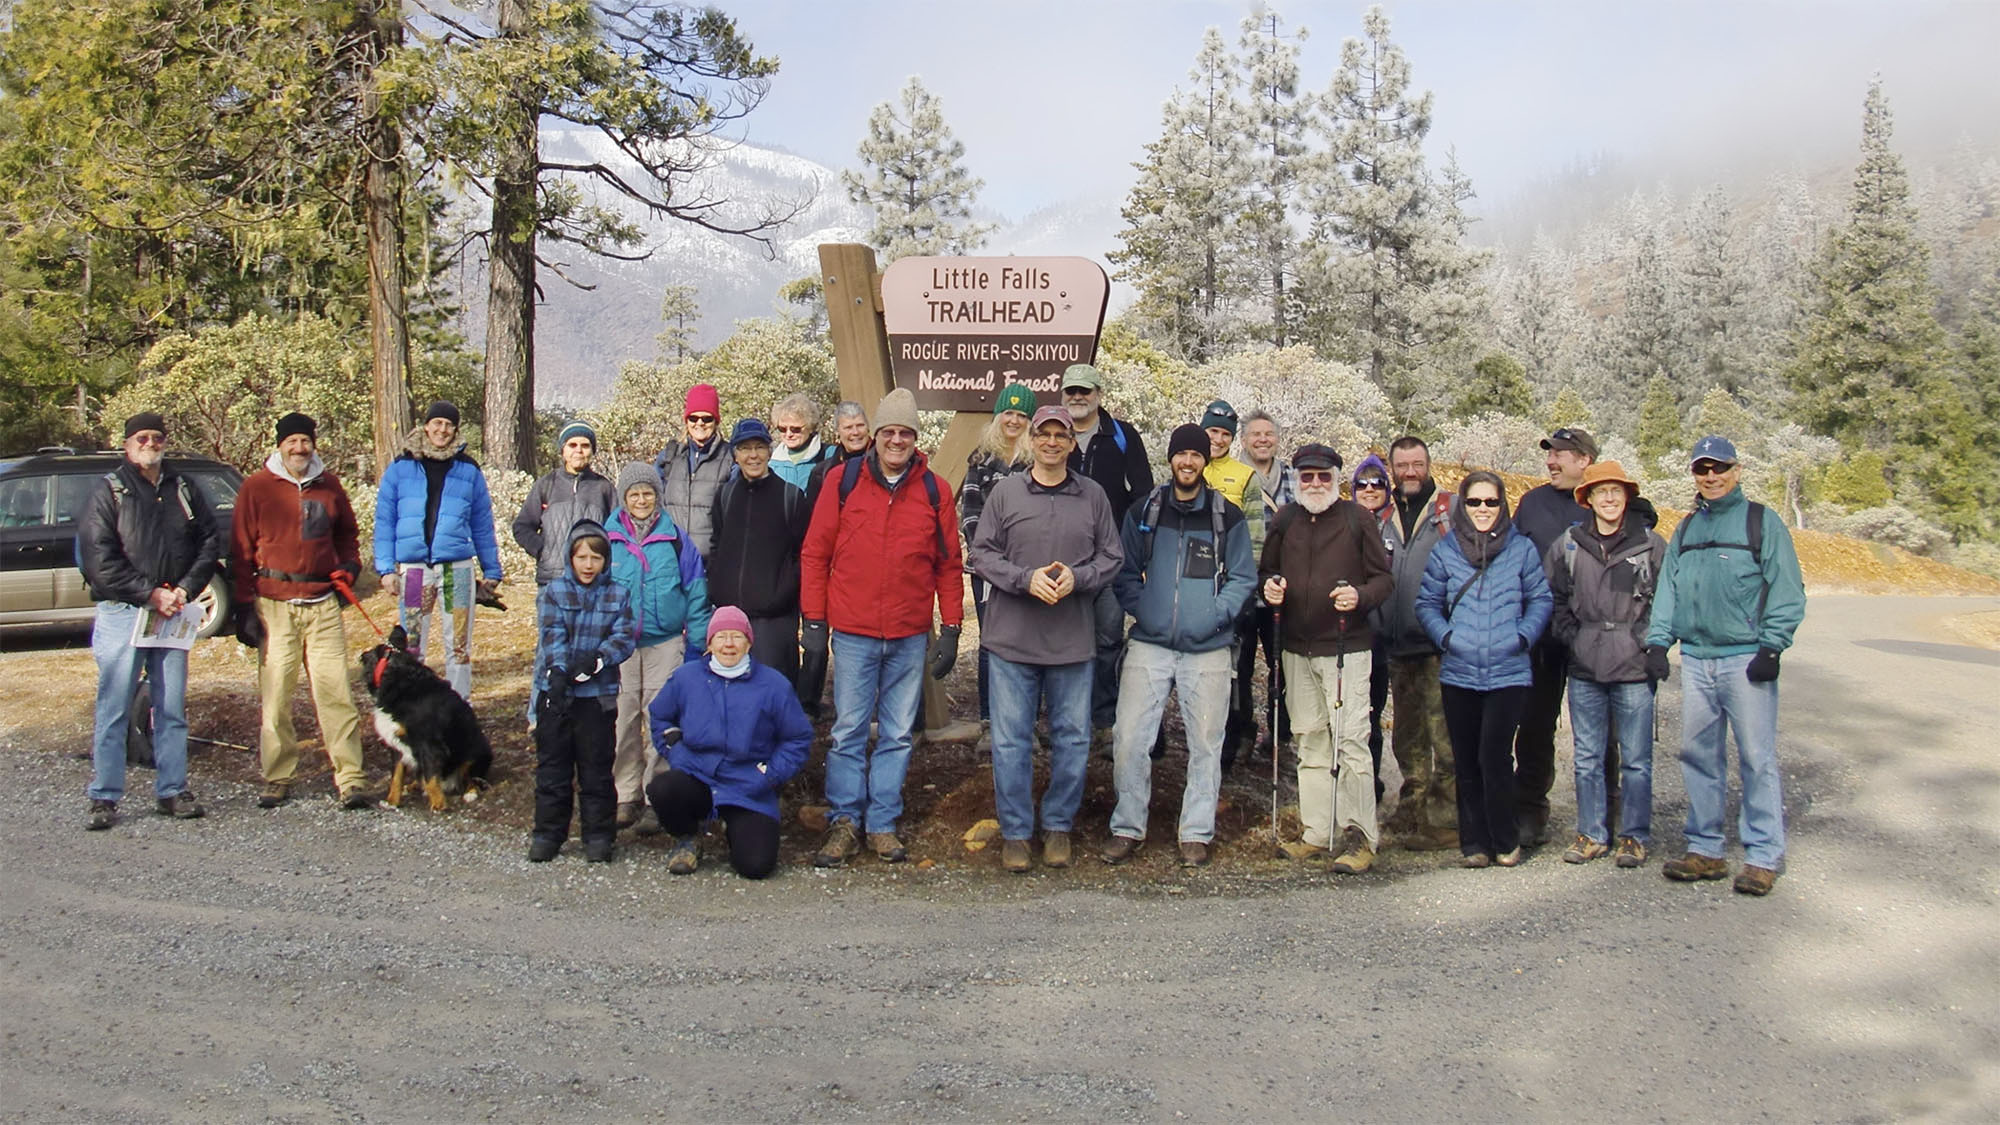 events_and_hikes_16x9b_web.jpg